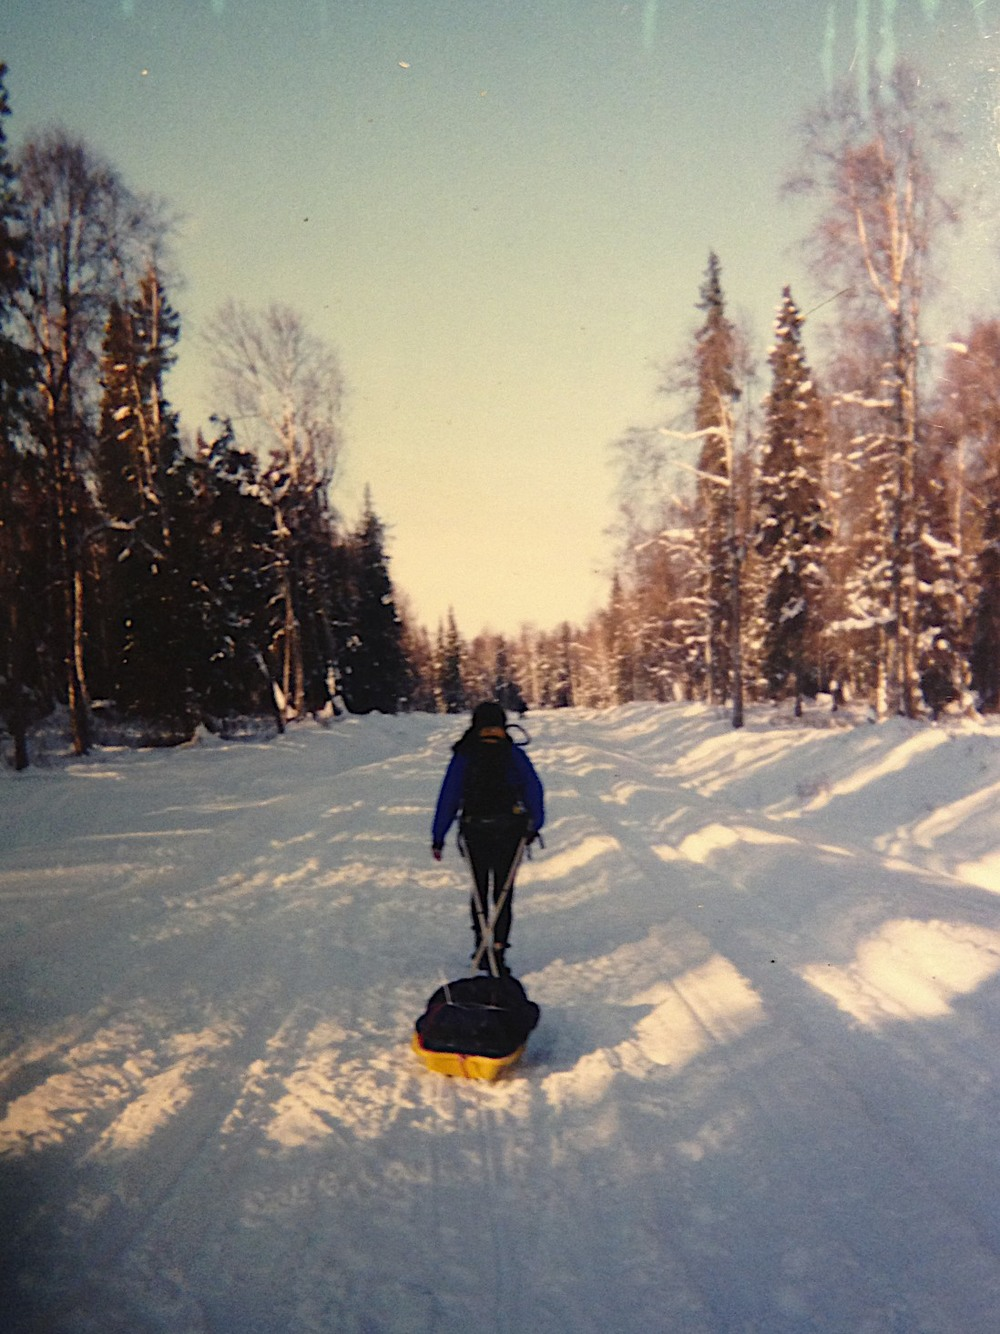 Elizabeth pulling her mandatory sled of gear during the 2000 Susitna 100 in Alaska.